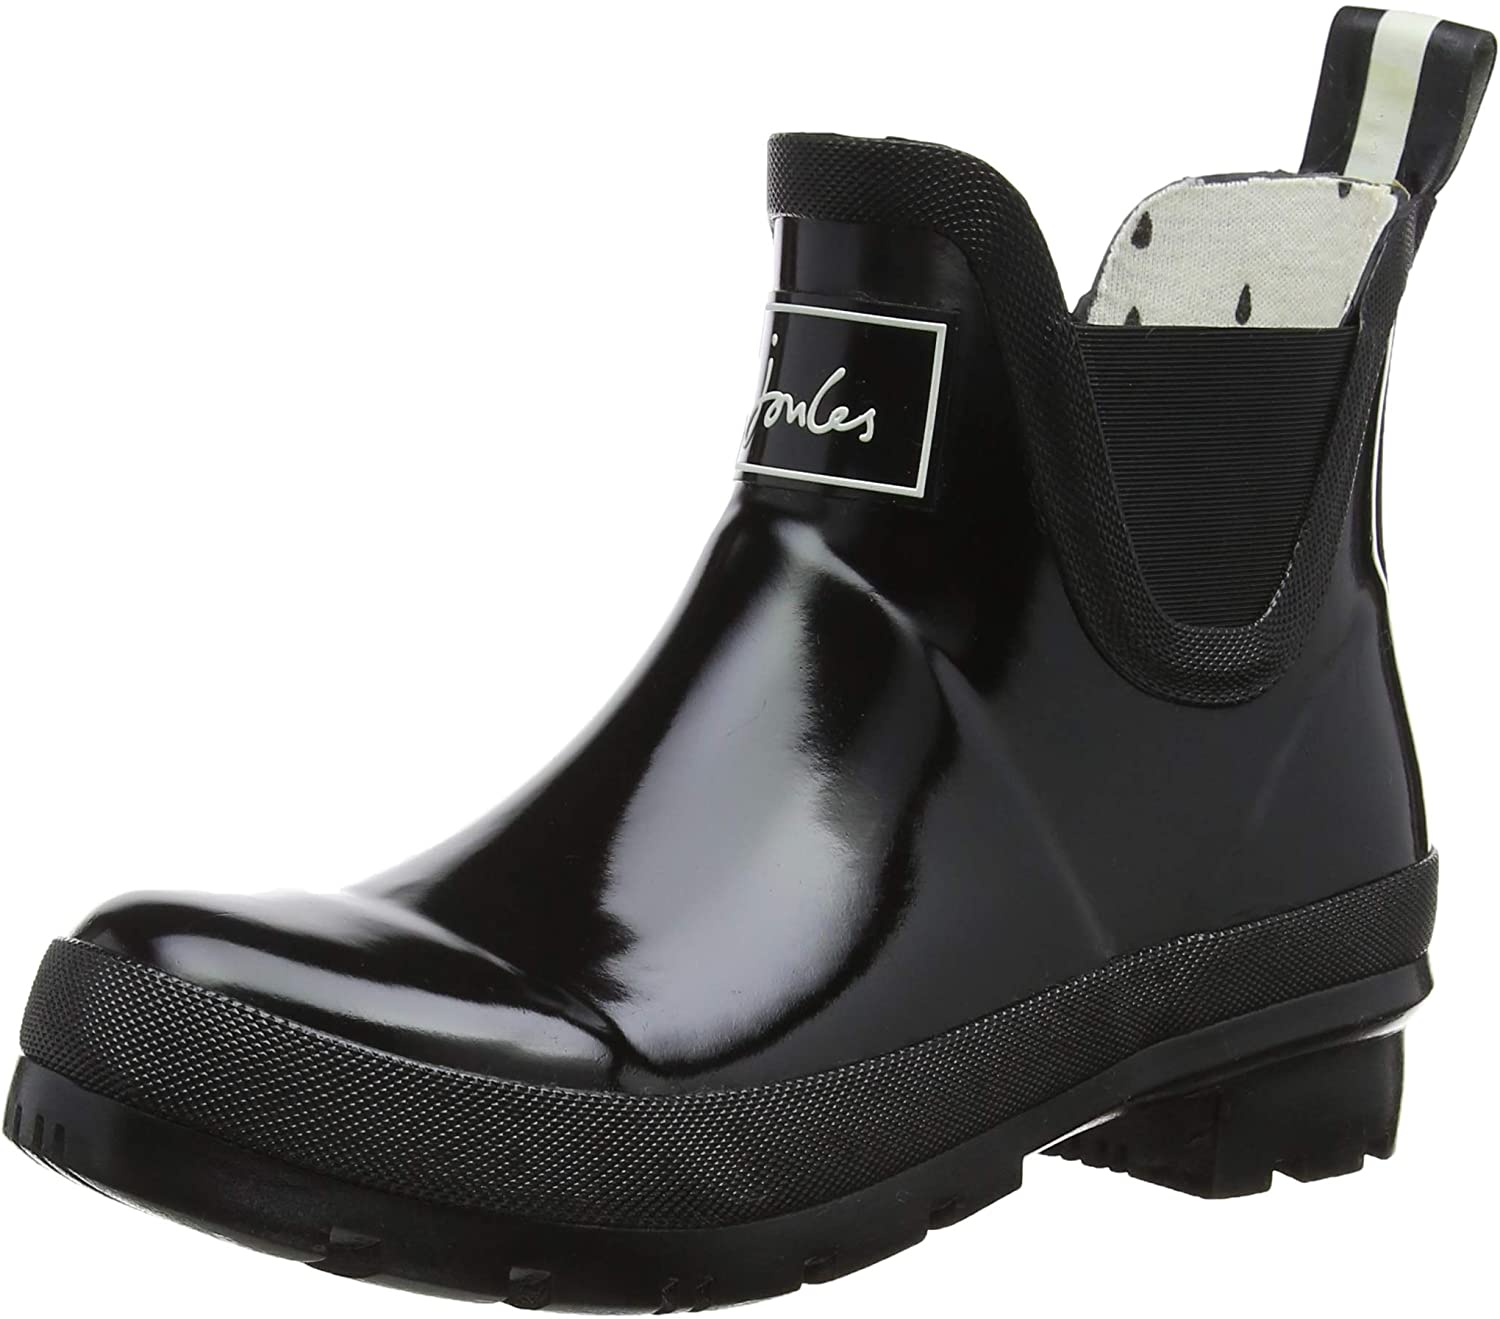 Joules Womens Wellibob Ankle-High Rubber Rain Boot